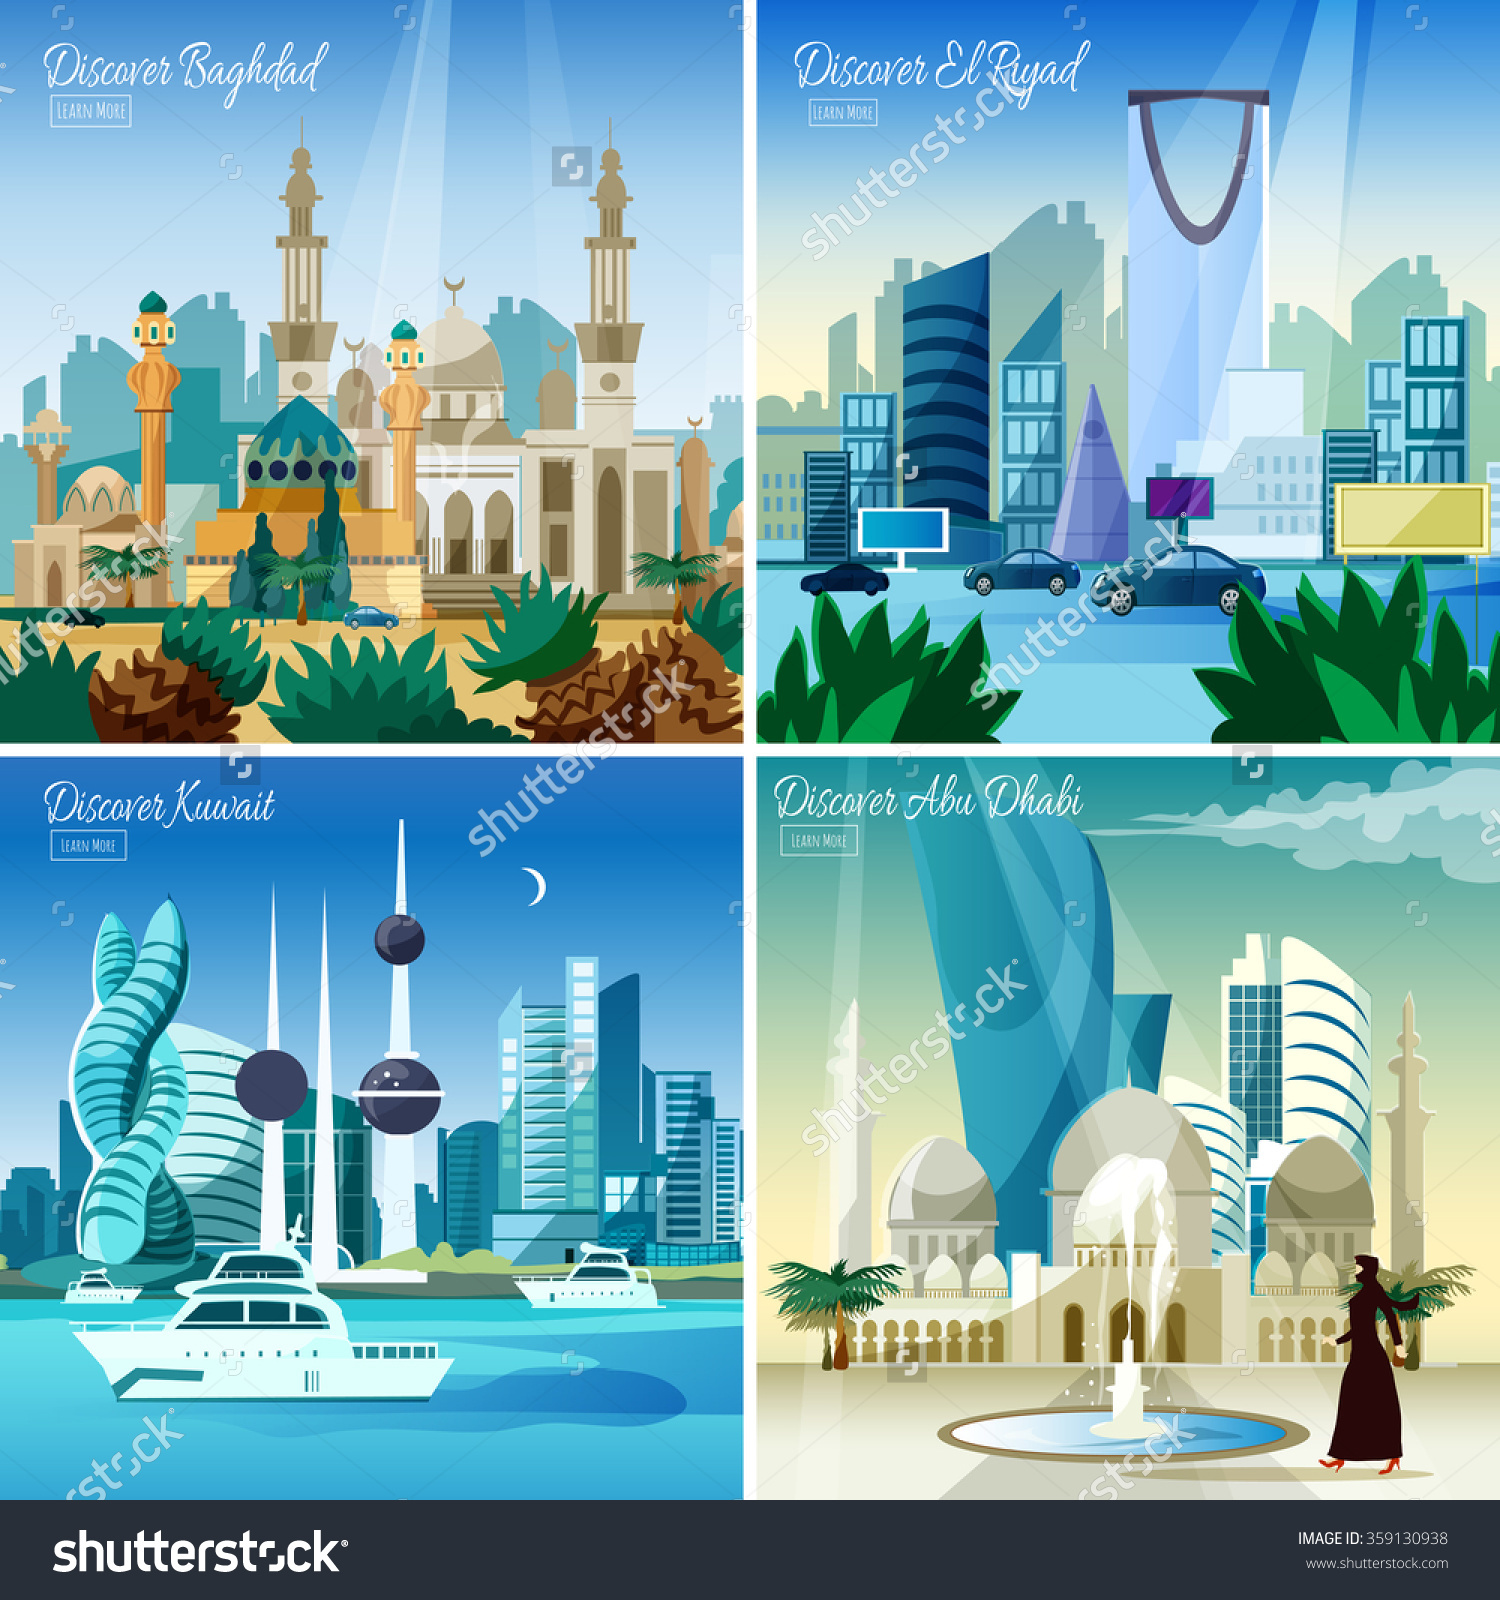 Discover Baghdad Kuwait Abu Dhabi Largest Stock Vector 359130938.